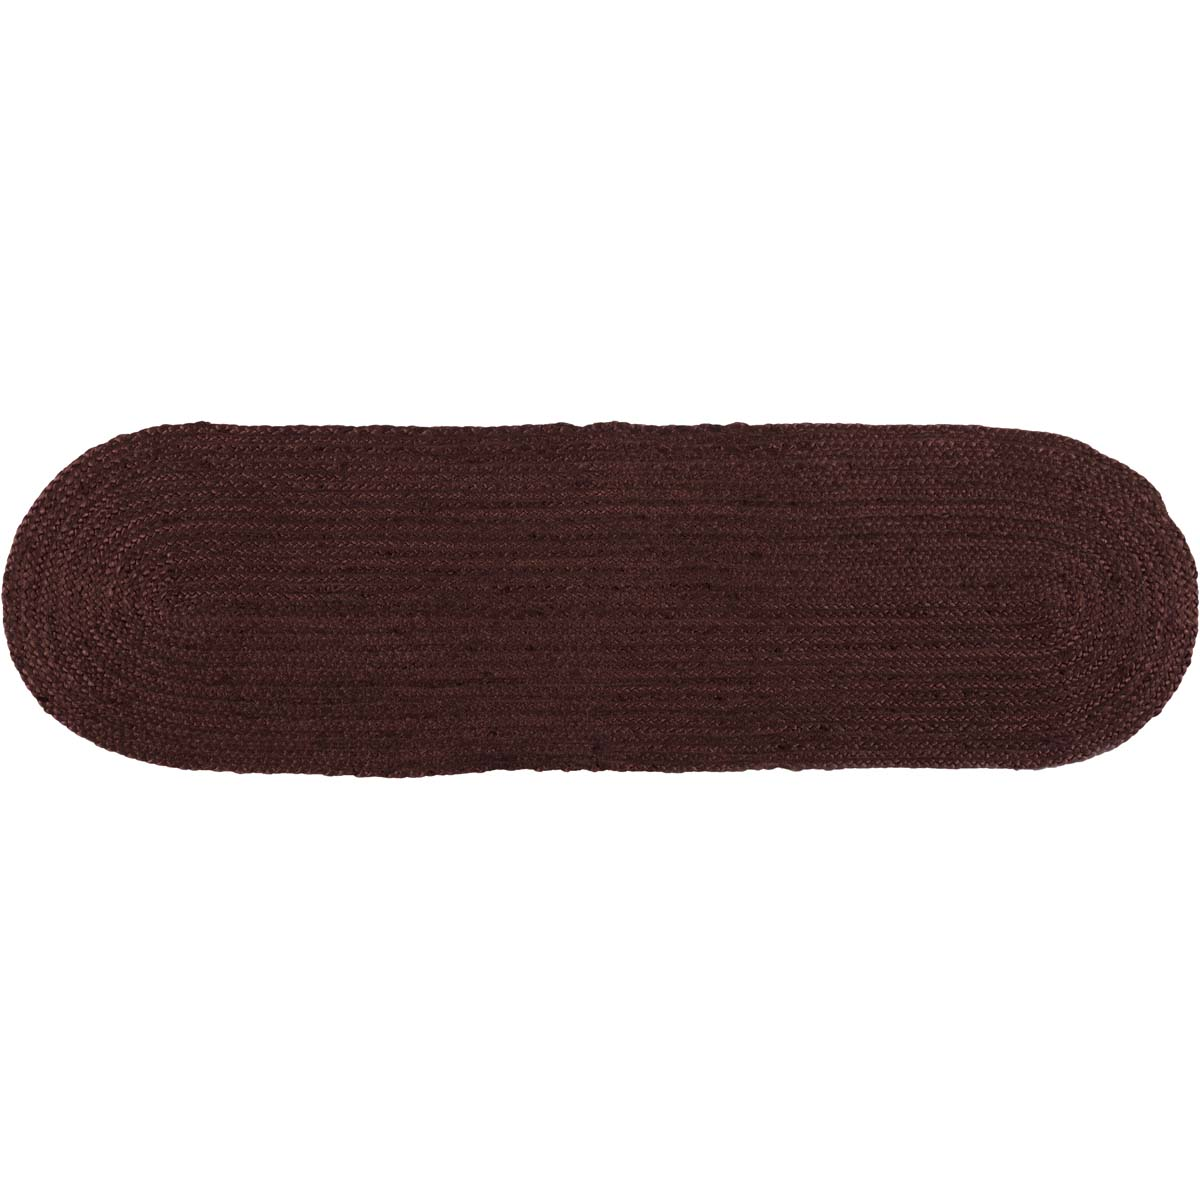 Burgundy Jute Runner Oval 13x48